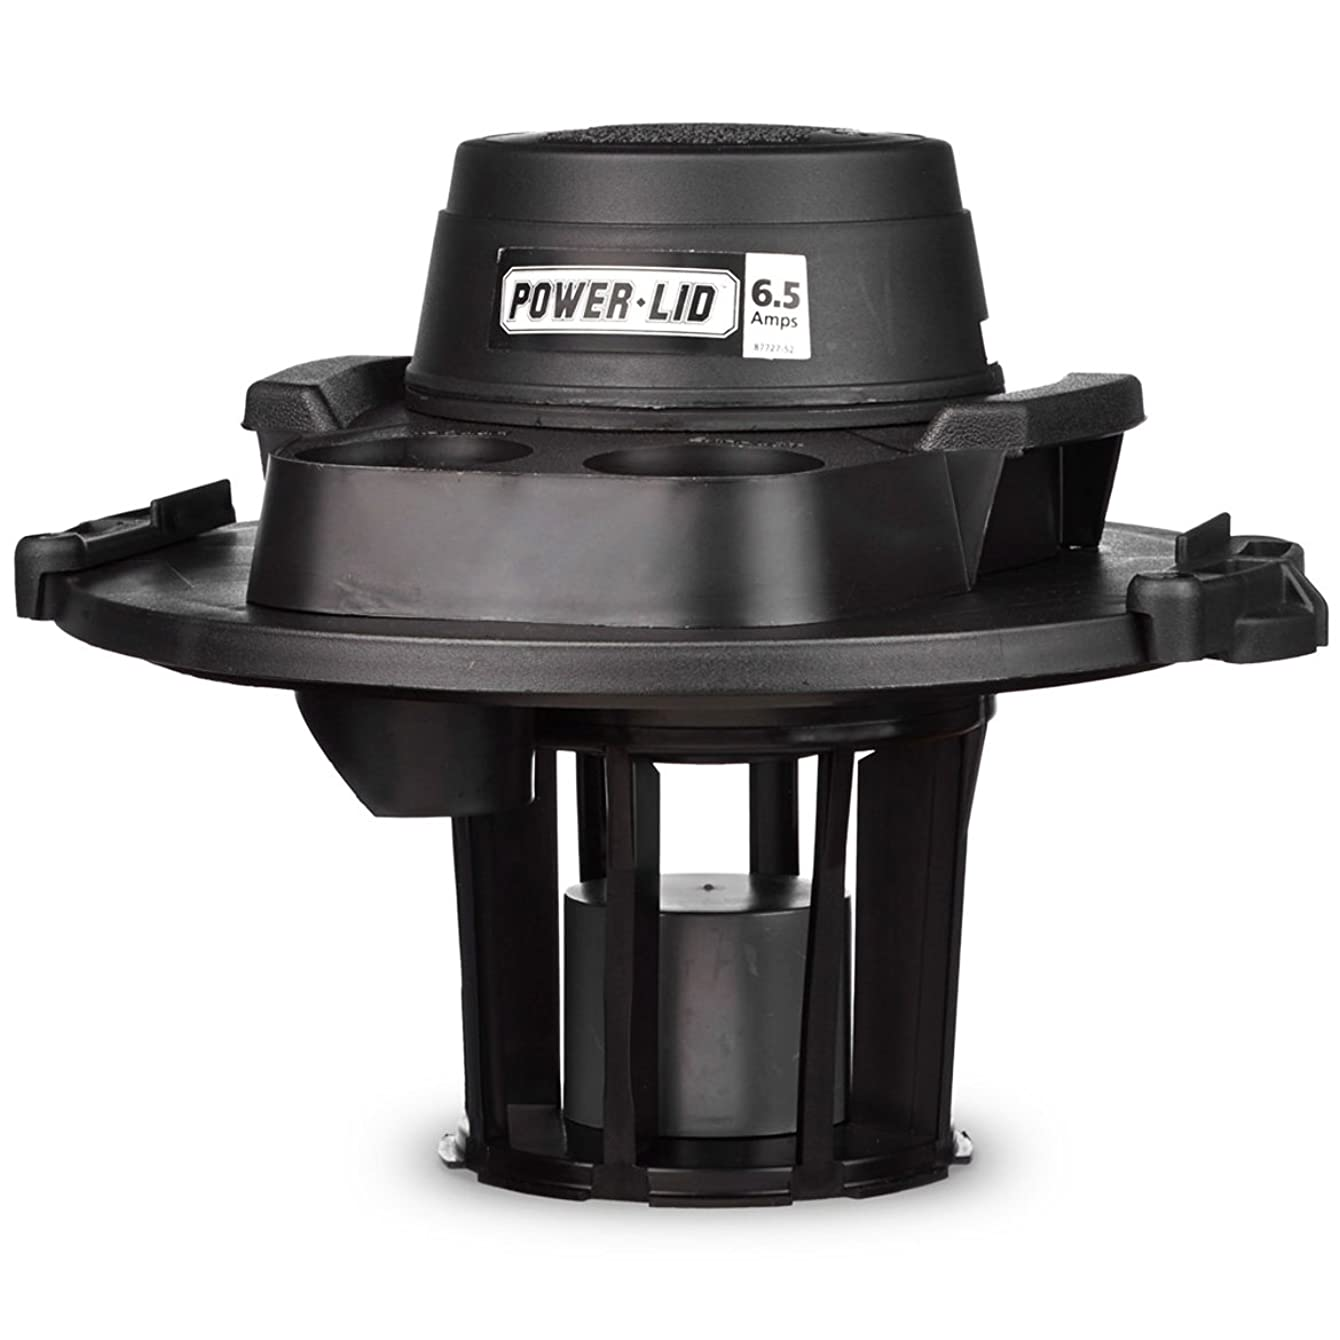 Shop Vac 600-45-00 6.5 Amp Wet or Dry Vacuum Head Power Lid